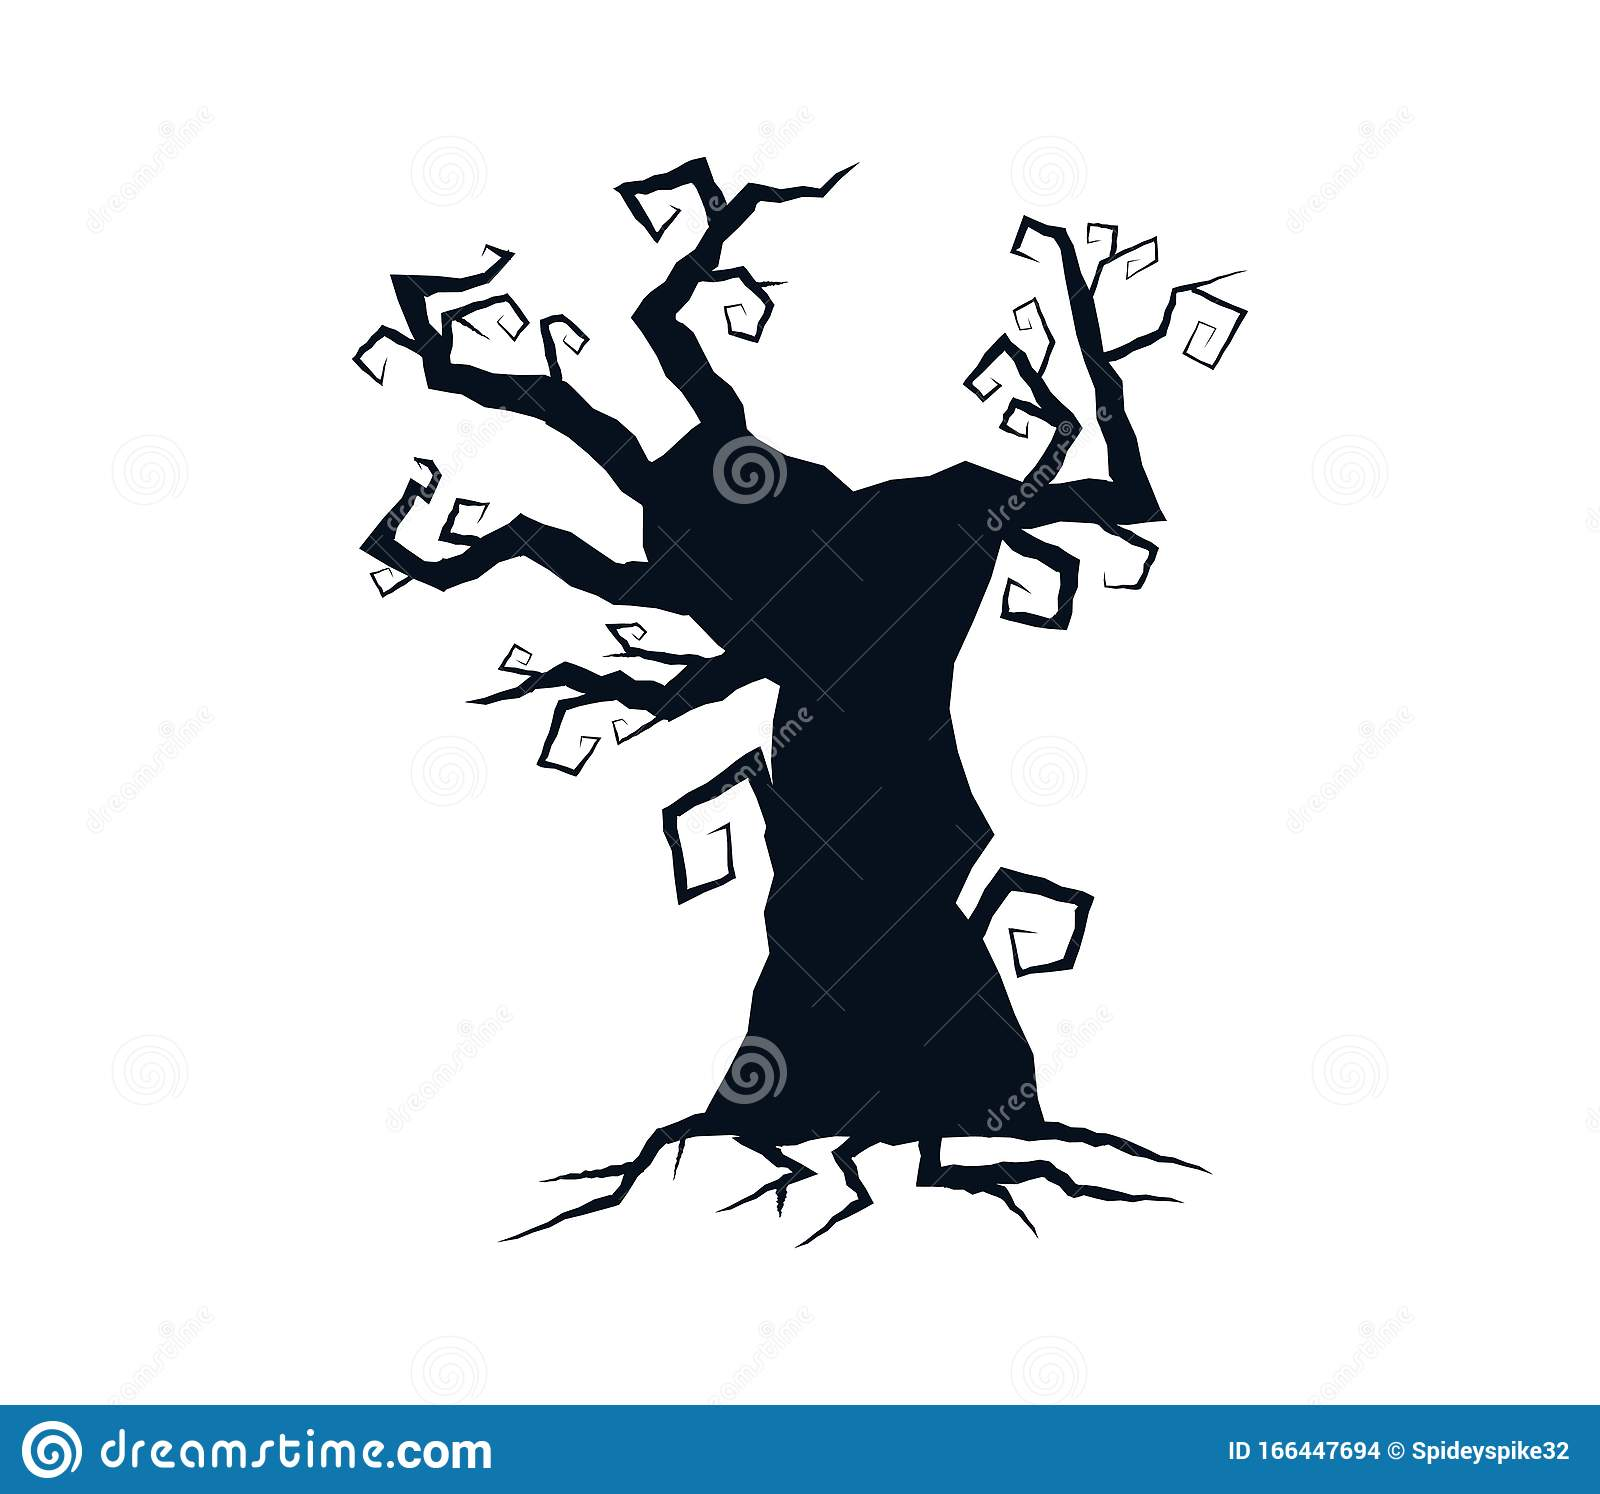 Tree Silhouette Scary Stock Illustrations 15 550 Tree Silhouette Scary Stock Illustrations Vectors Clipart Dreamstime